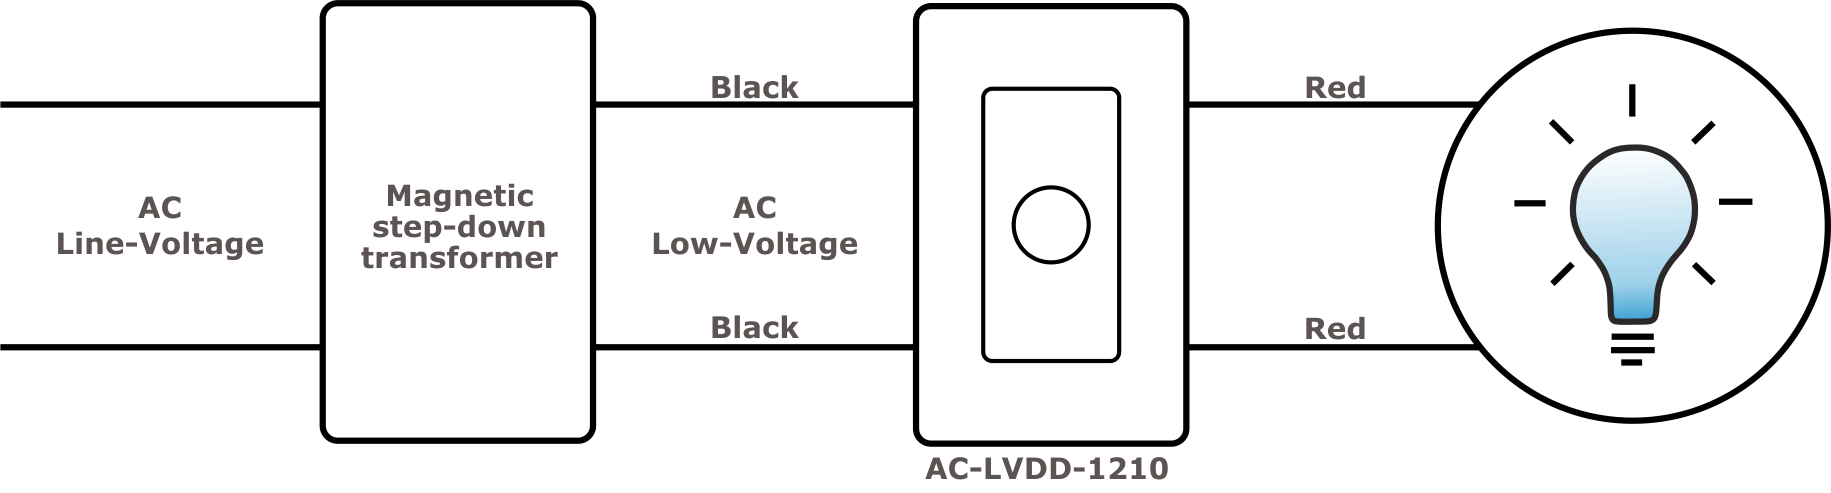 AC – Low Voltage Digital Dimmer Wiring Diagram